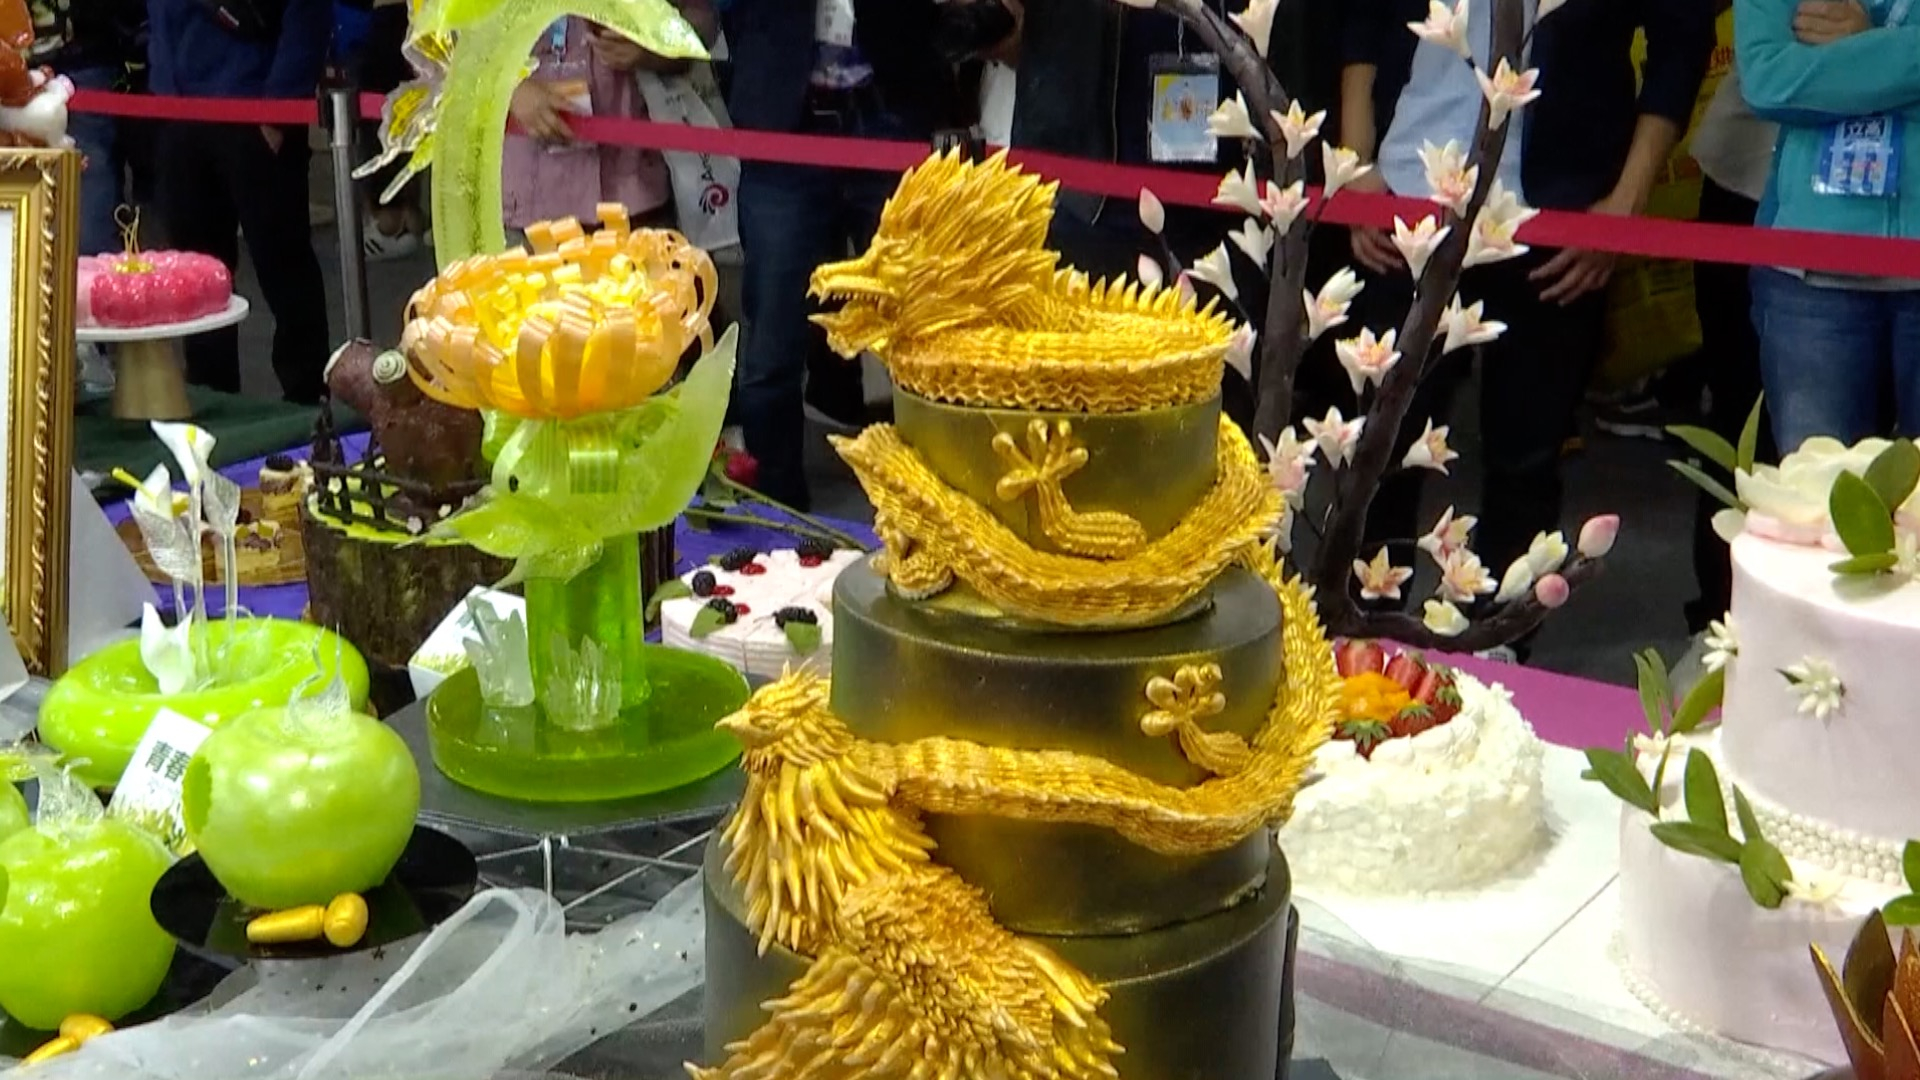 Chinese pastry cooks show off skills at Shanghai competition